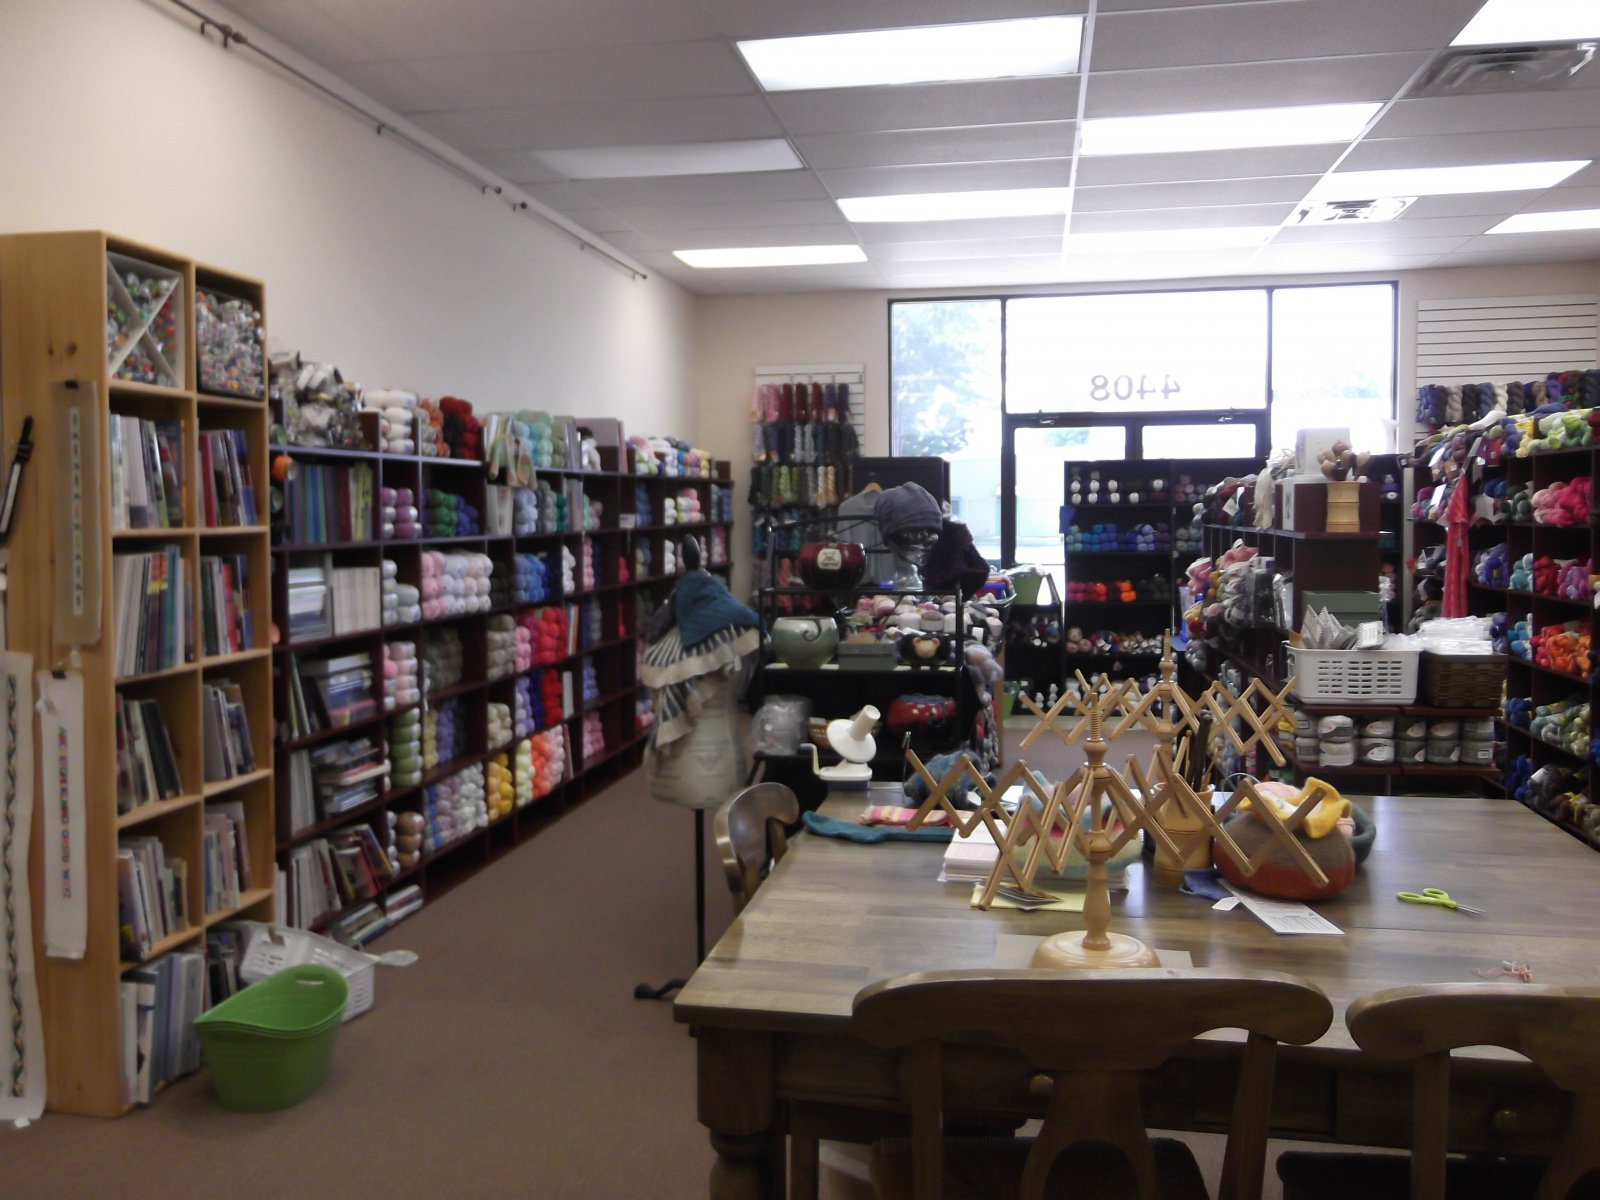 A view of the yarn room.